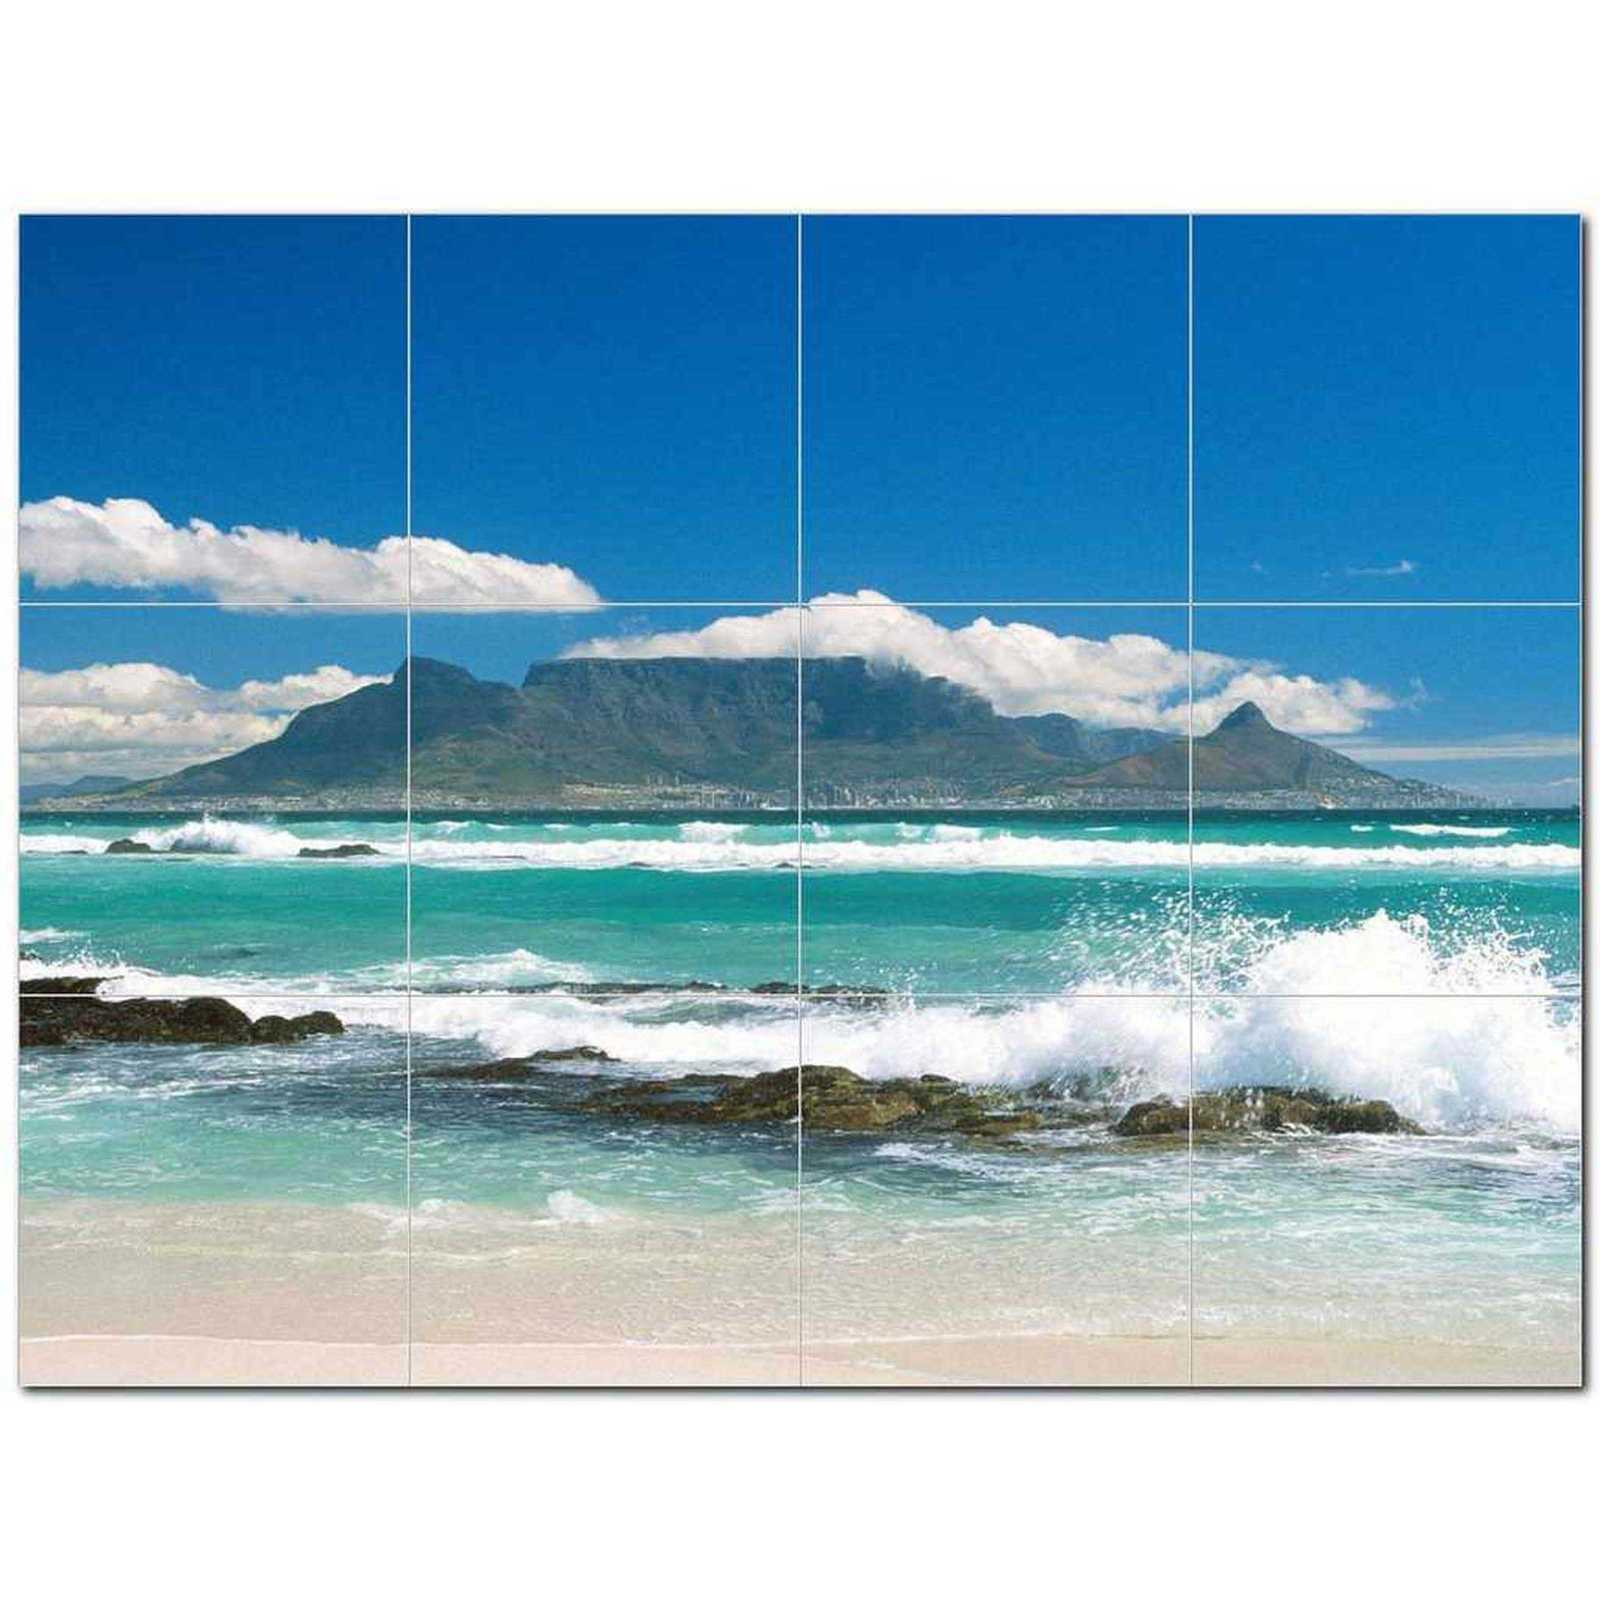 Primary image for Wave Picture Ceramic Tile Mural Kitchen Backsplash Bathroom Shower BAZ406318